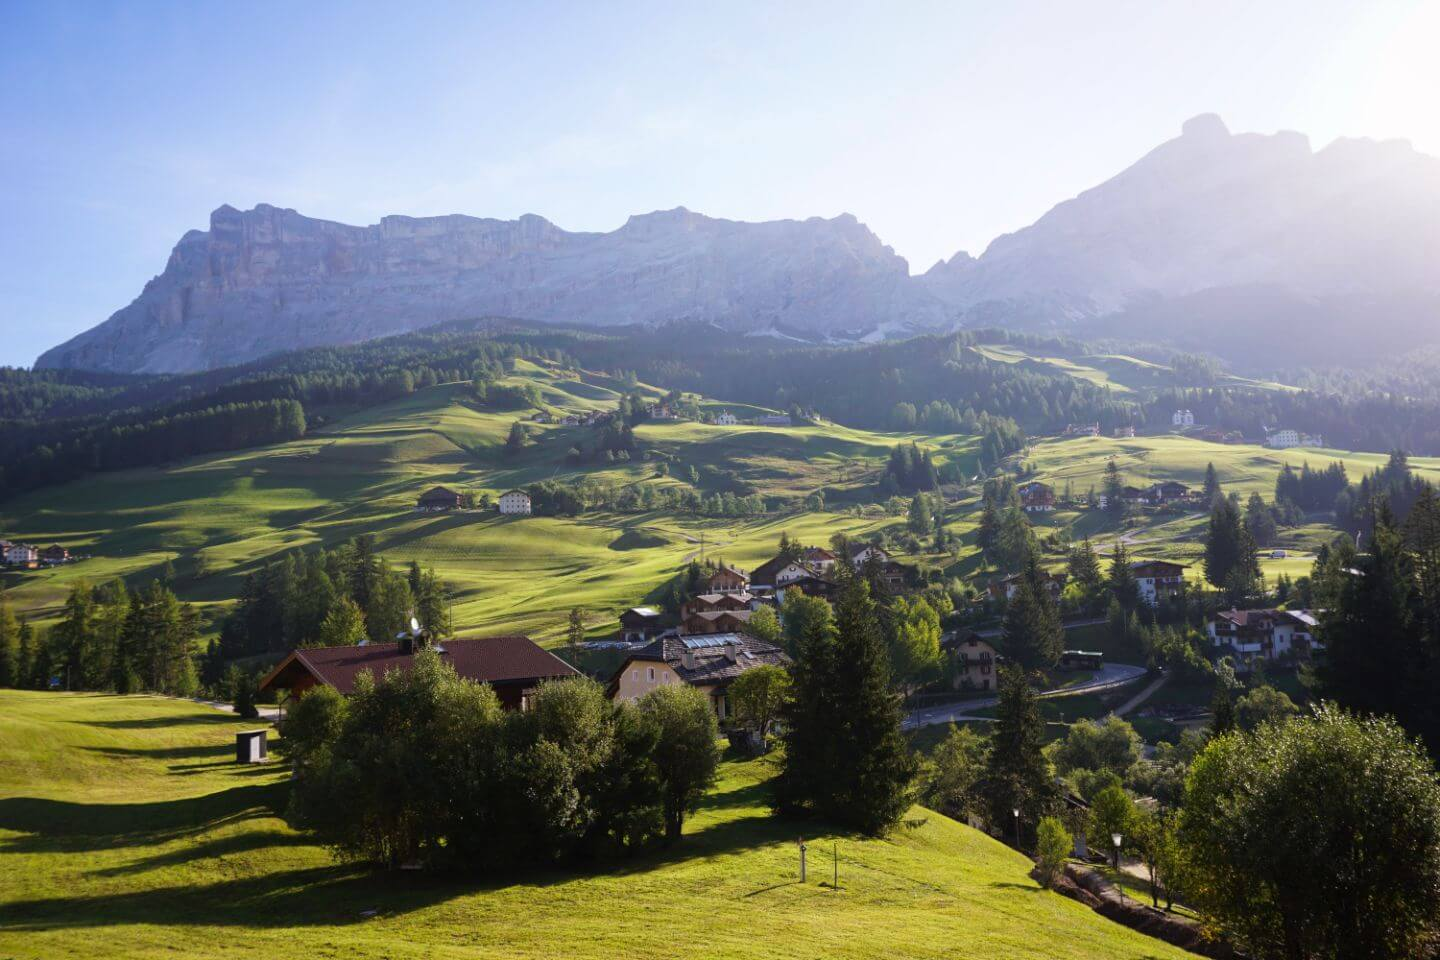 La Villa, Alta Badia - Best Places to Stay in the Dolomites in Summer